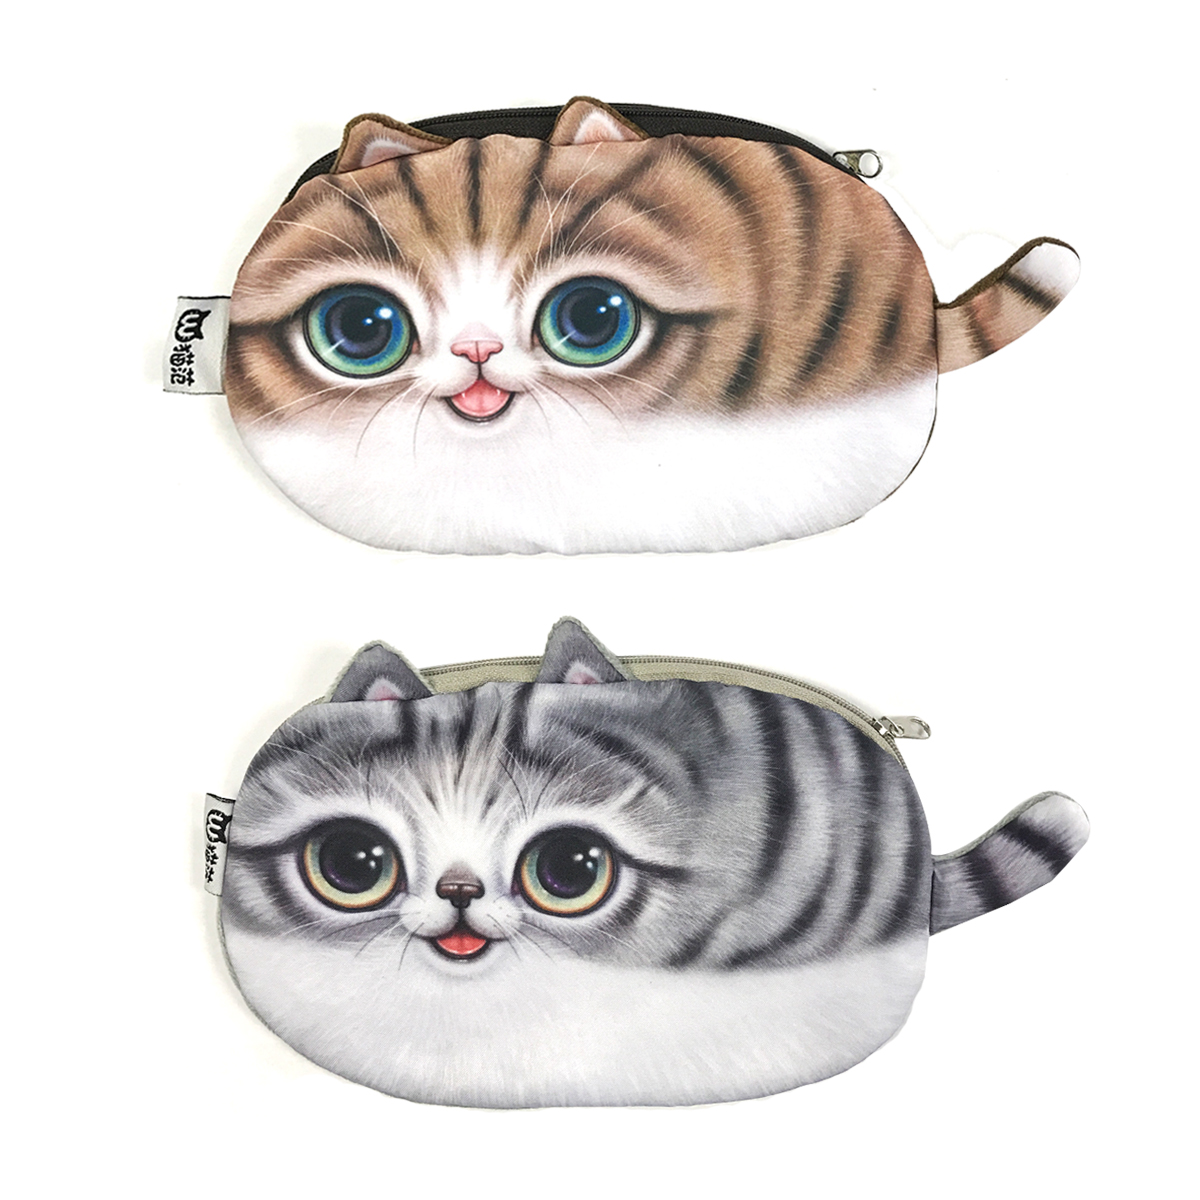 ALLYDREW Cat Face Pencil Pouches Kitty Pencil Holders Cat Pencil Cases 3D Cat Cosmetic Bags (set of 2) - Brown Cat & Gray Cat